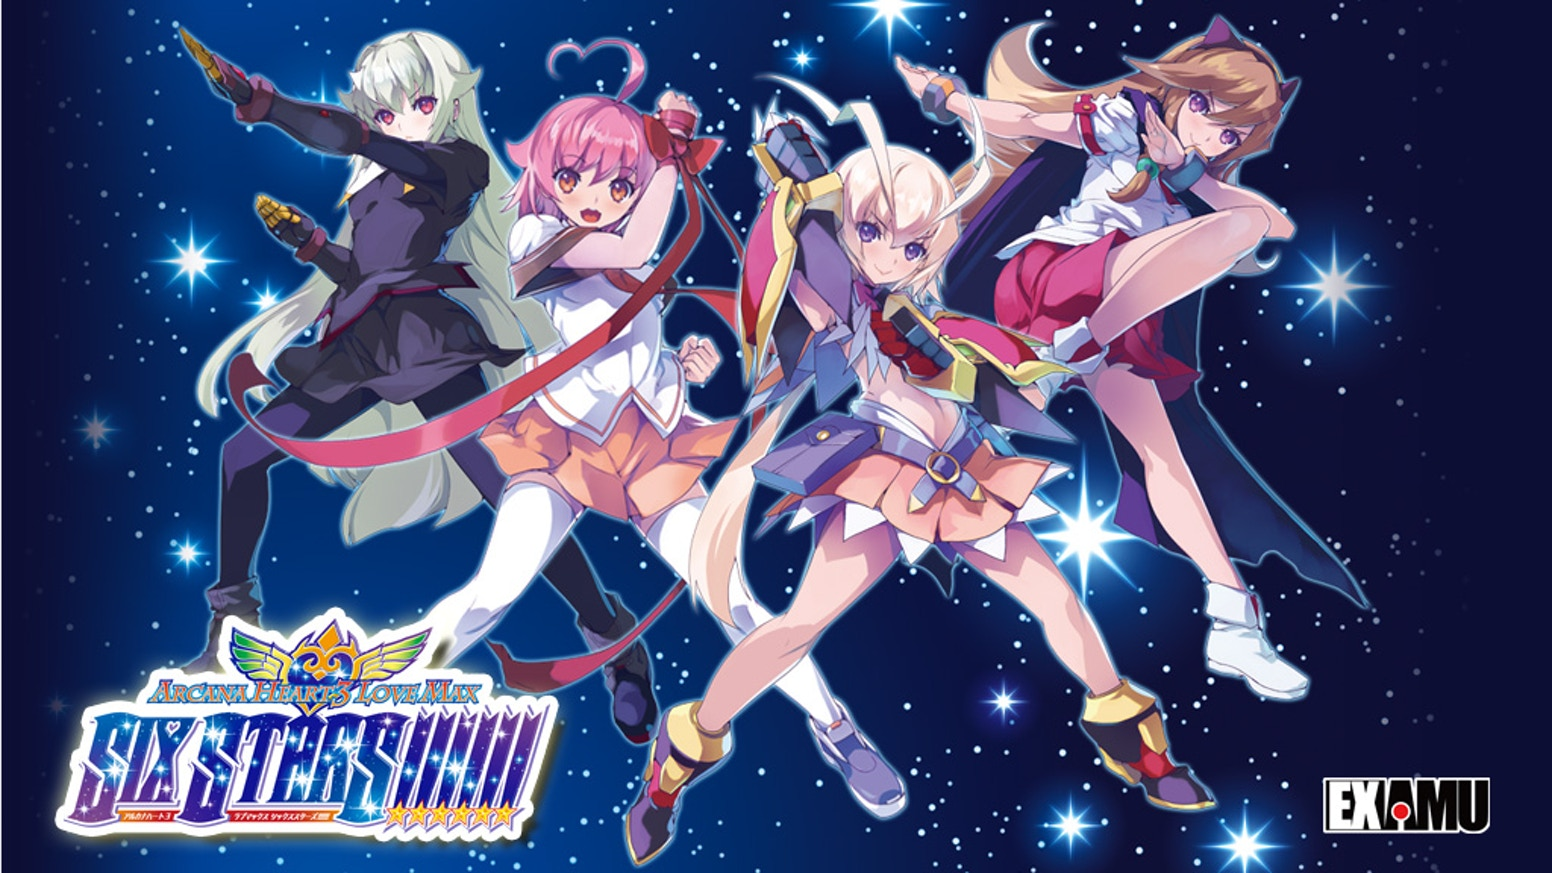 The unique 2D fighting game action of the Arcana Heart series continues with this latest edition English port to PC.